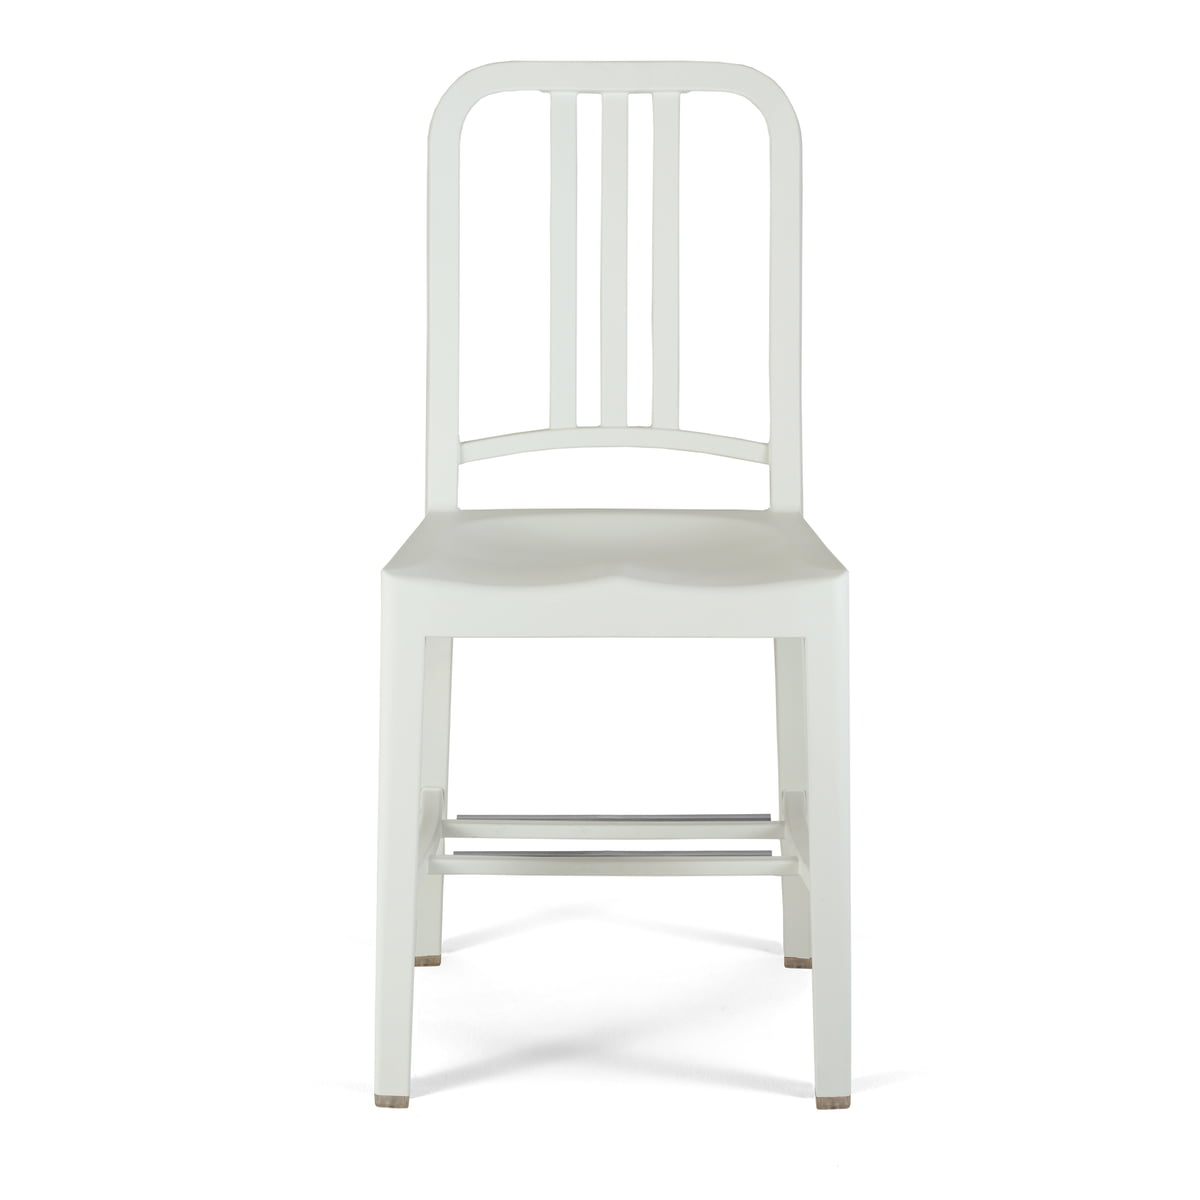 emeco 111 navy side chair coca cola collaboration. emeco - 111 navy coca-cola chair side coca cola collaboration h